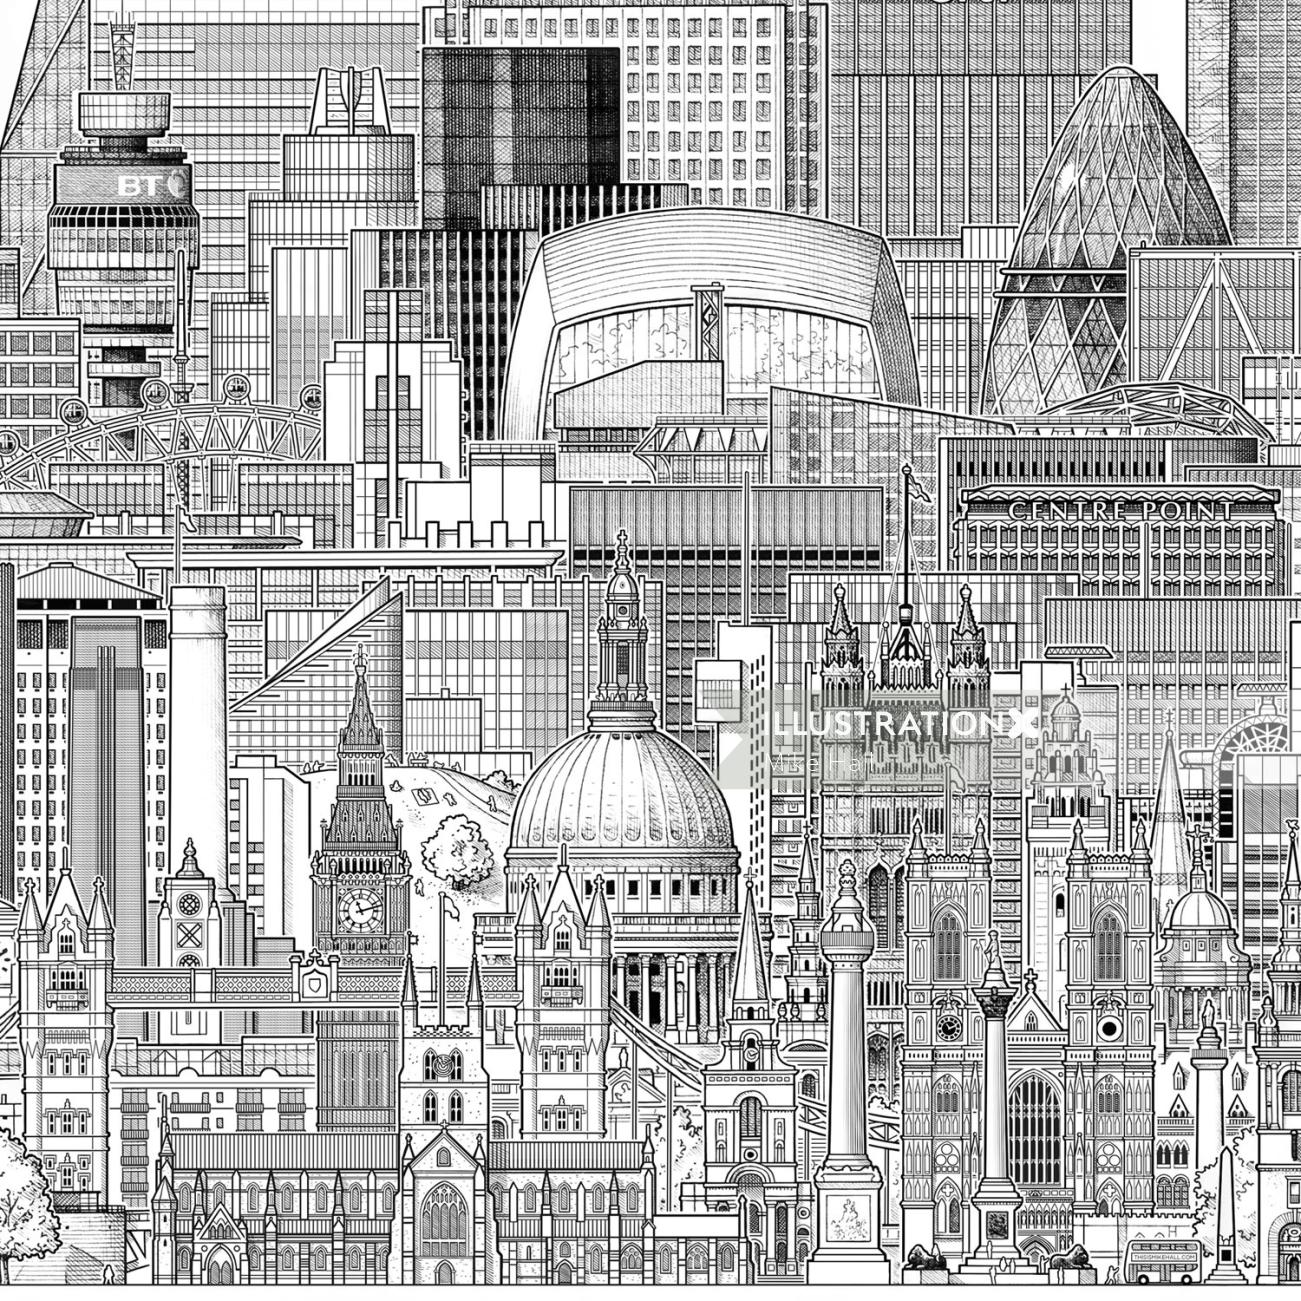 London buildings illustration by  Mike hall